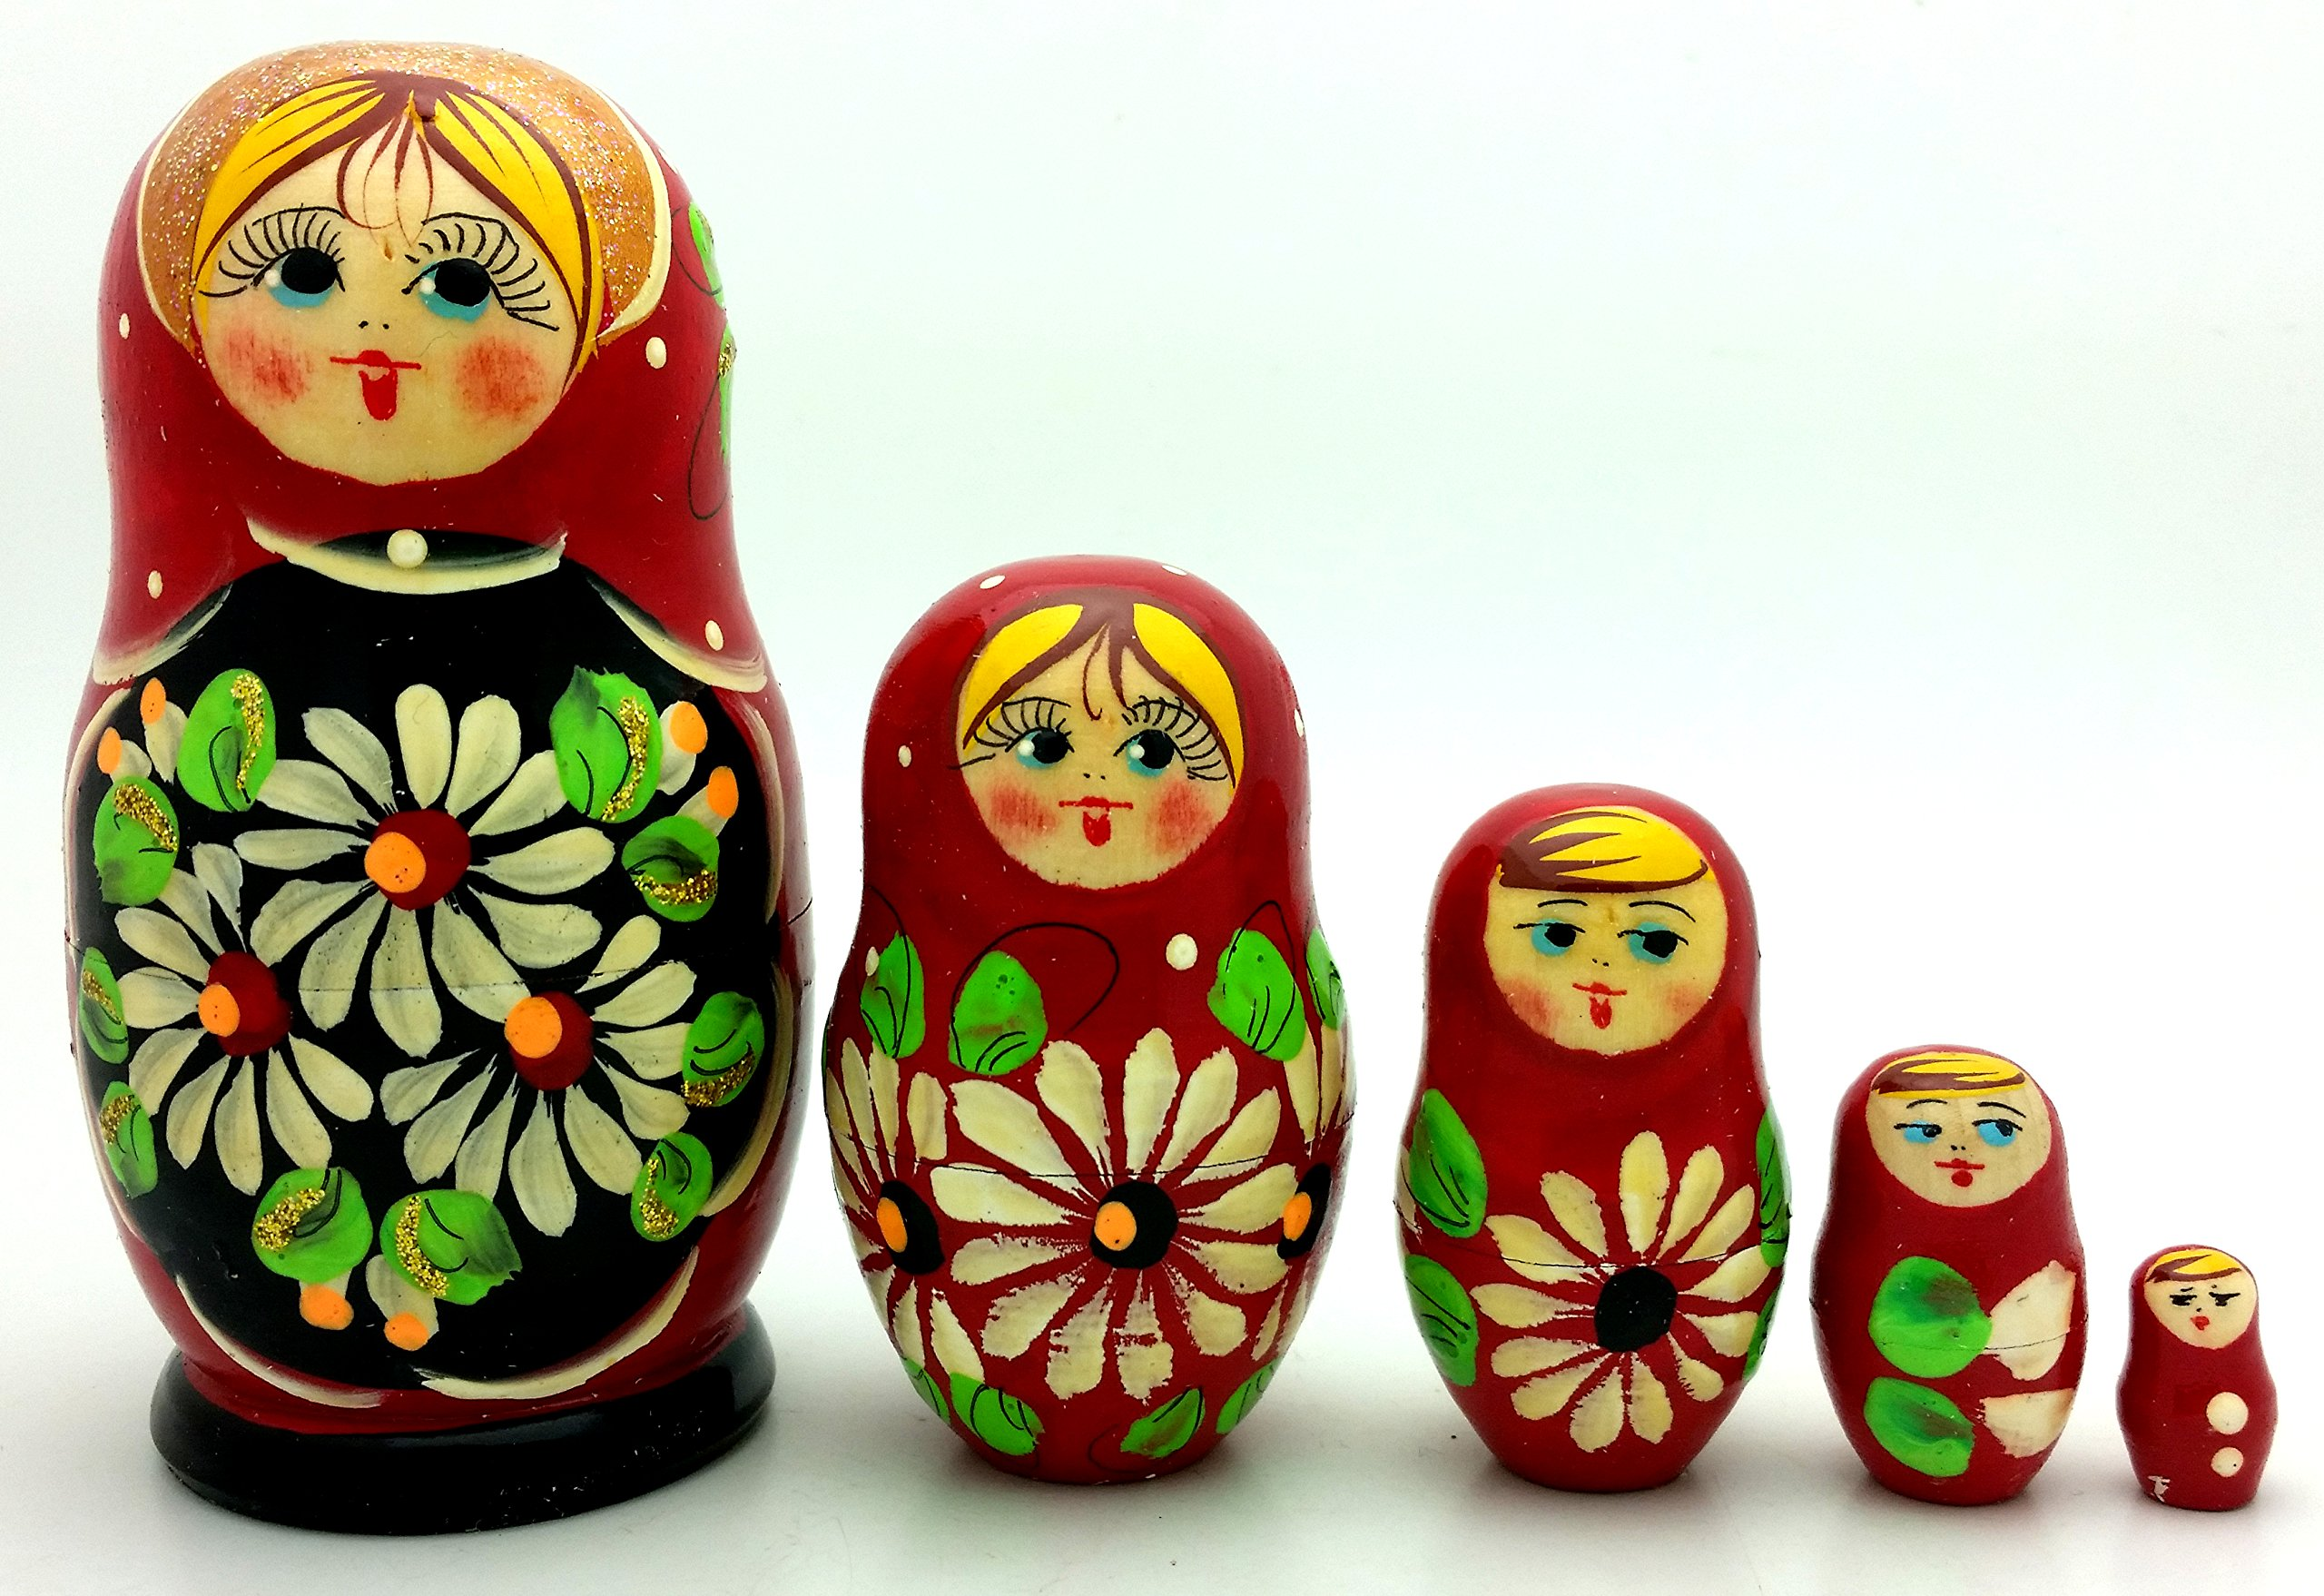 Lot of 3 Sets Russian Traditional Nesting Stacking Wooden Dolls Each Matryoshka Babushka set contains 5 dolls by BuyRussianGifts (Image #5)